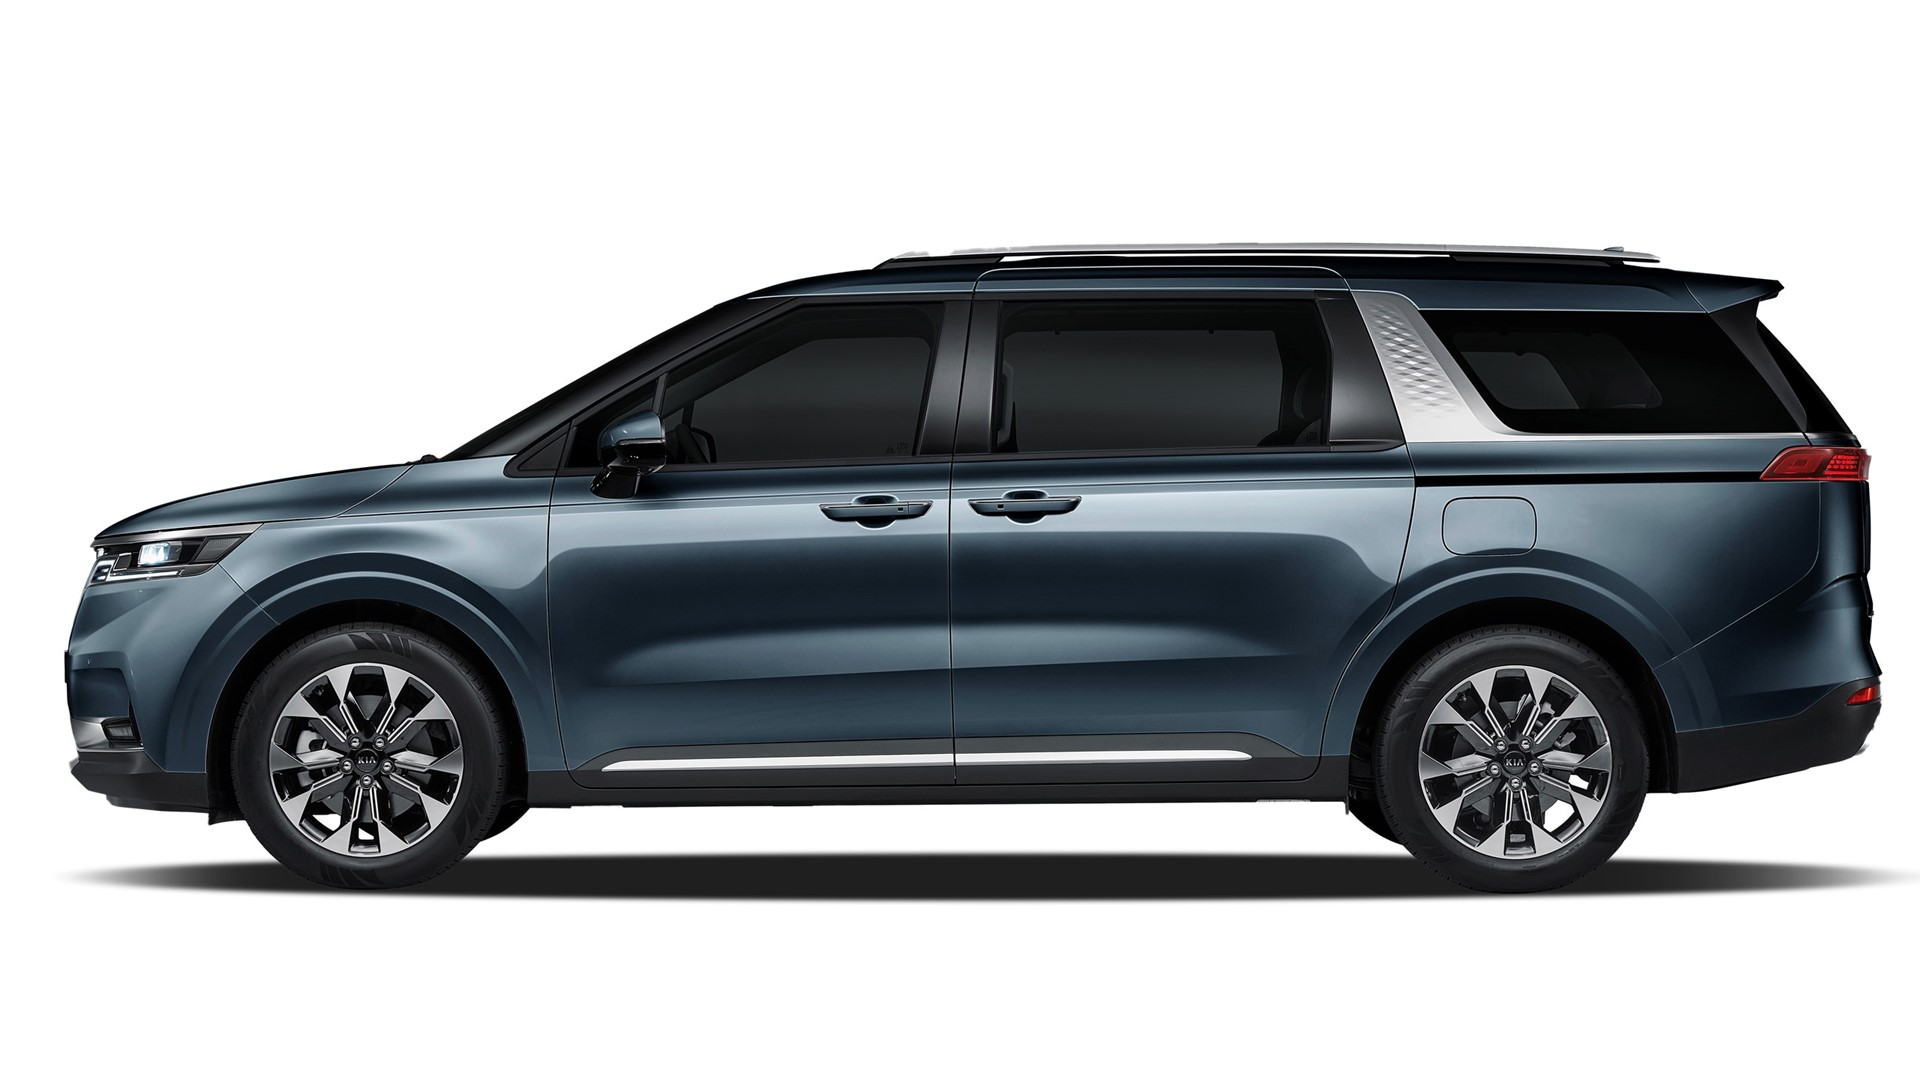 Kia introduces all-new Carnival, offering unrivalled style, space and comfort - Image 6